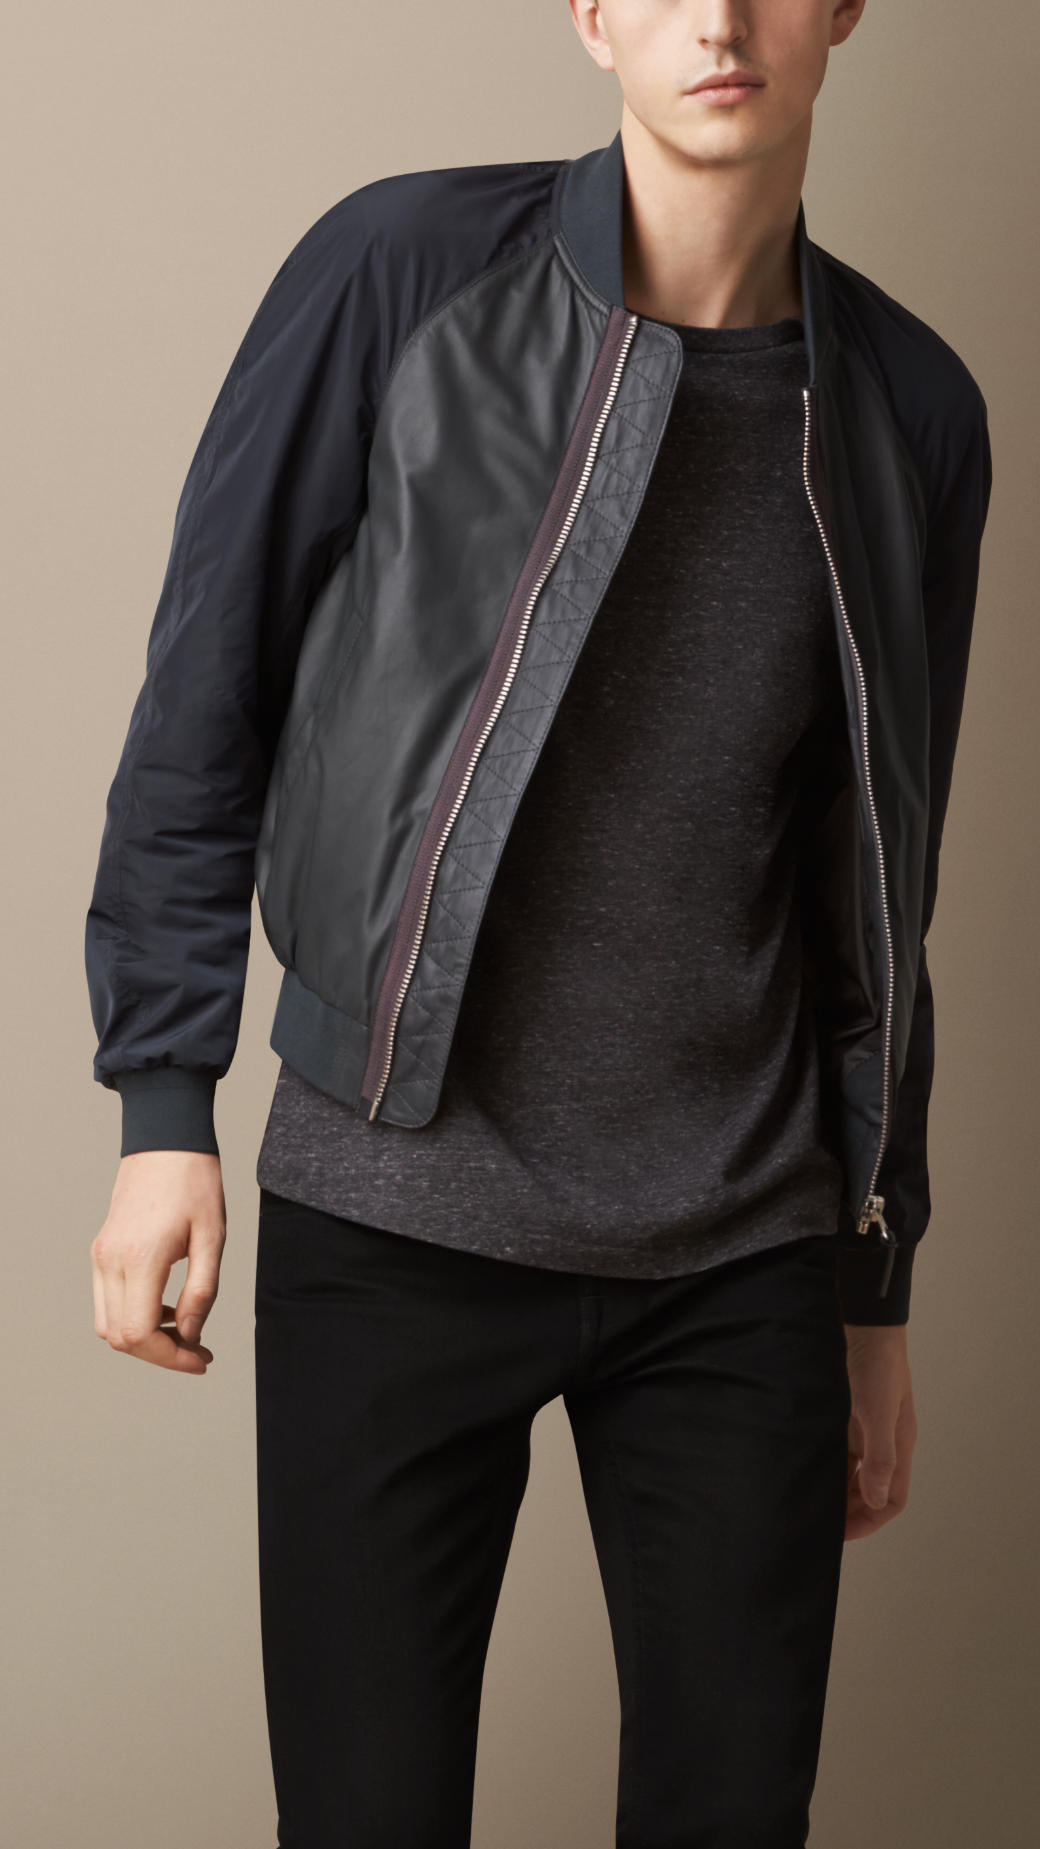 Burberry Nappa Leather Bomber Jacket with Contrast Sleeves in Gray ...